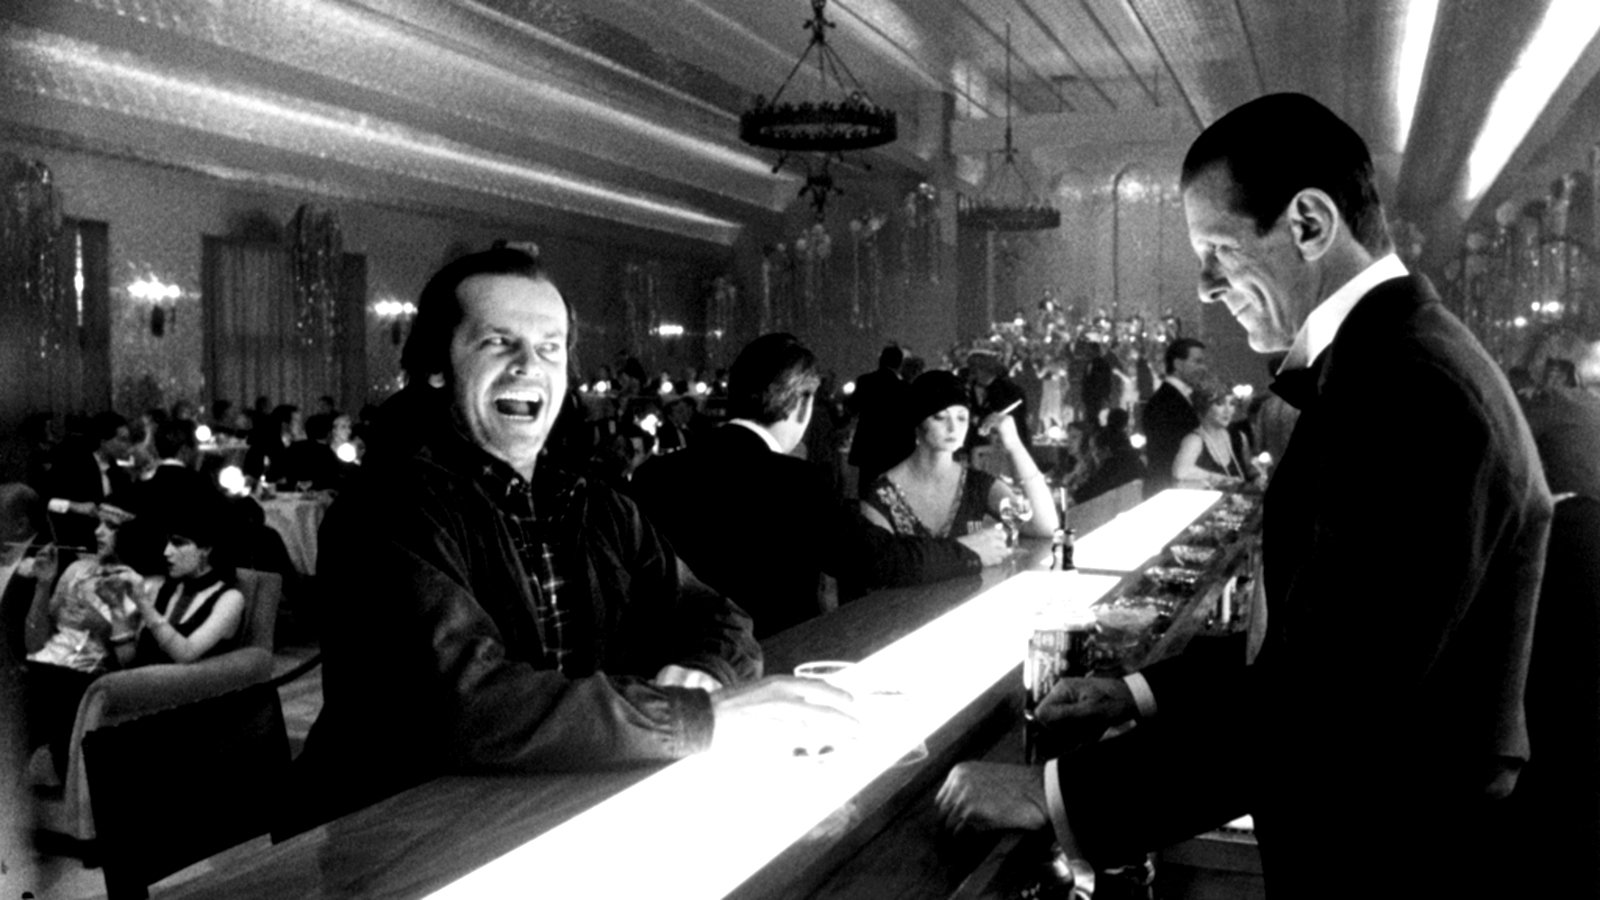 The Shining Wallpaper and Background Image   1600x900   ID ...